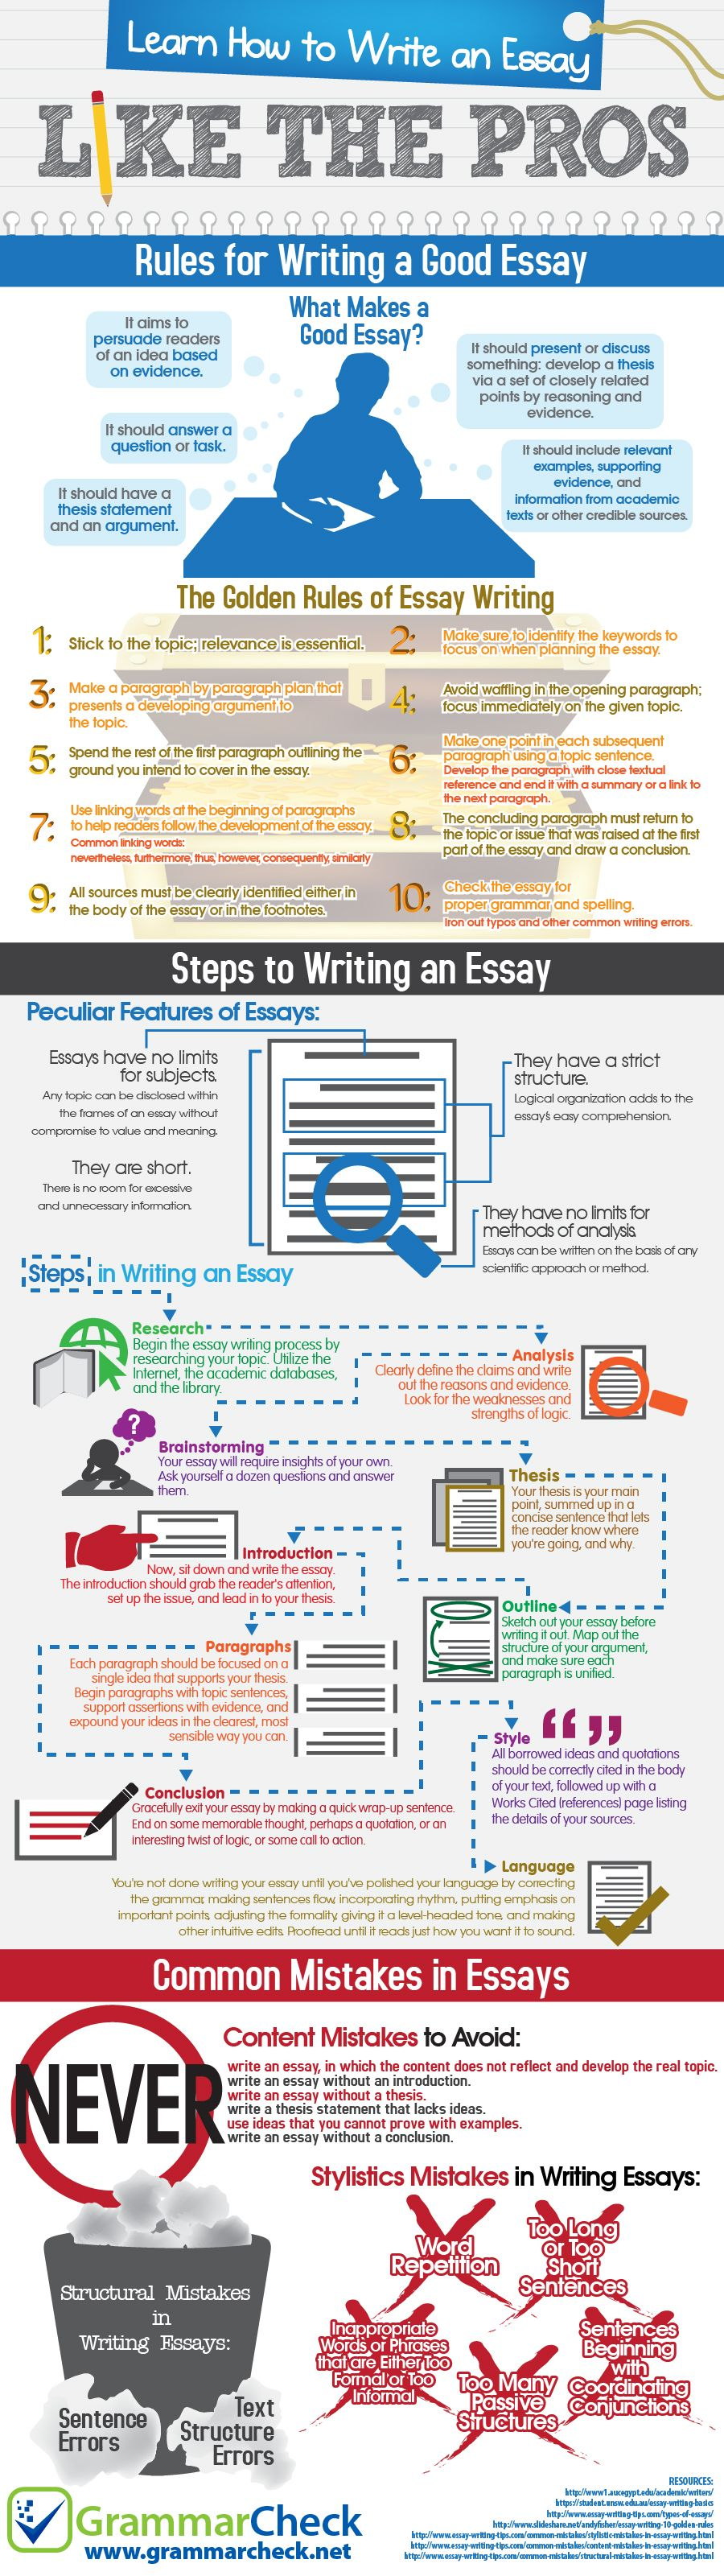 some resources for finals writing an essay language and awesome how to write an essay like the pros this infographic gives concise examples and key tips on what to do how to do it and why you can apply this to any